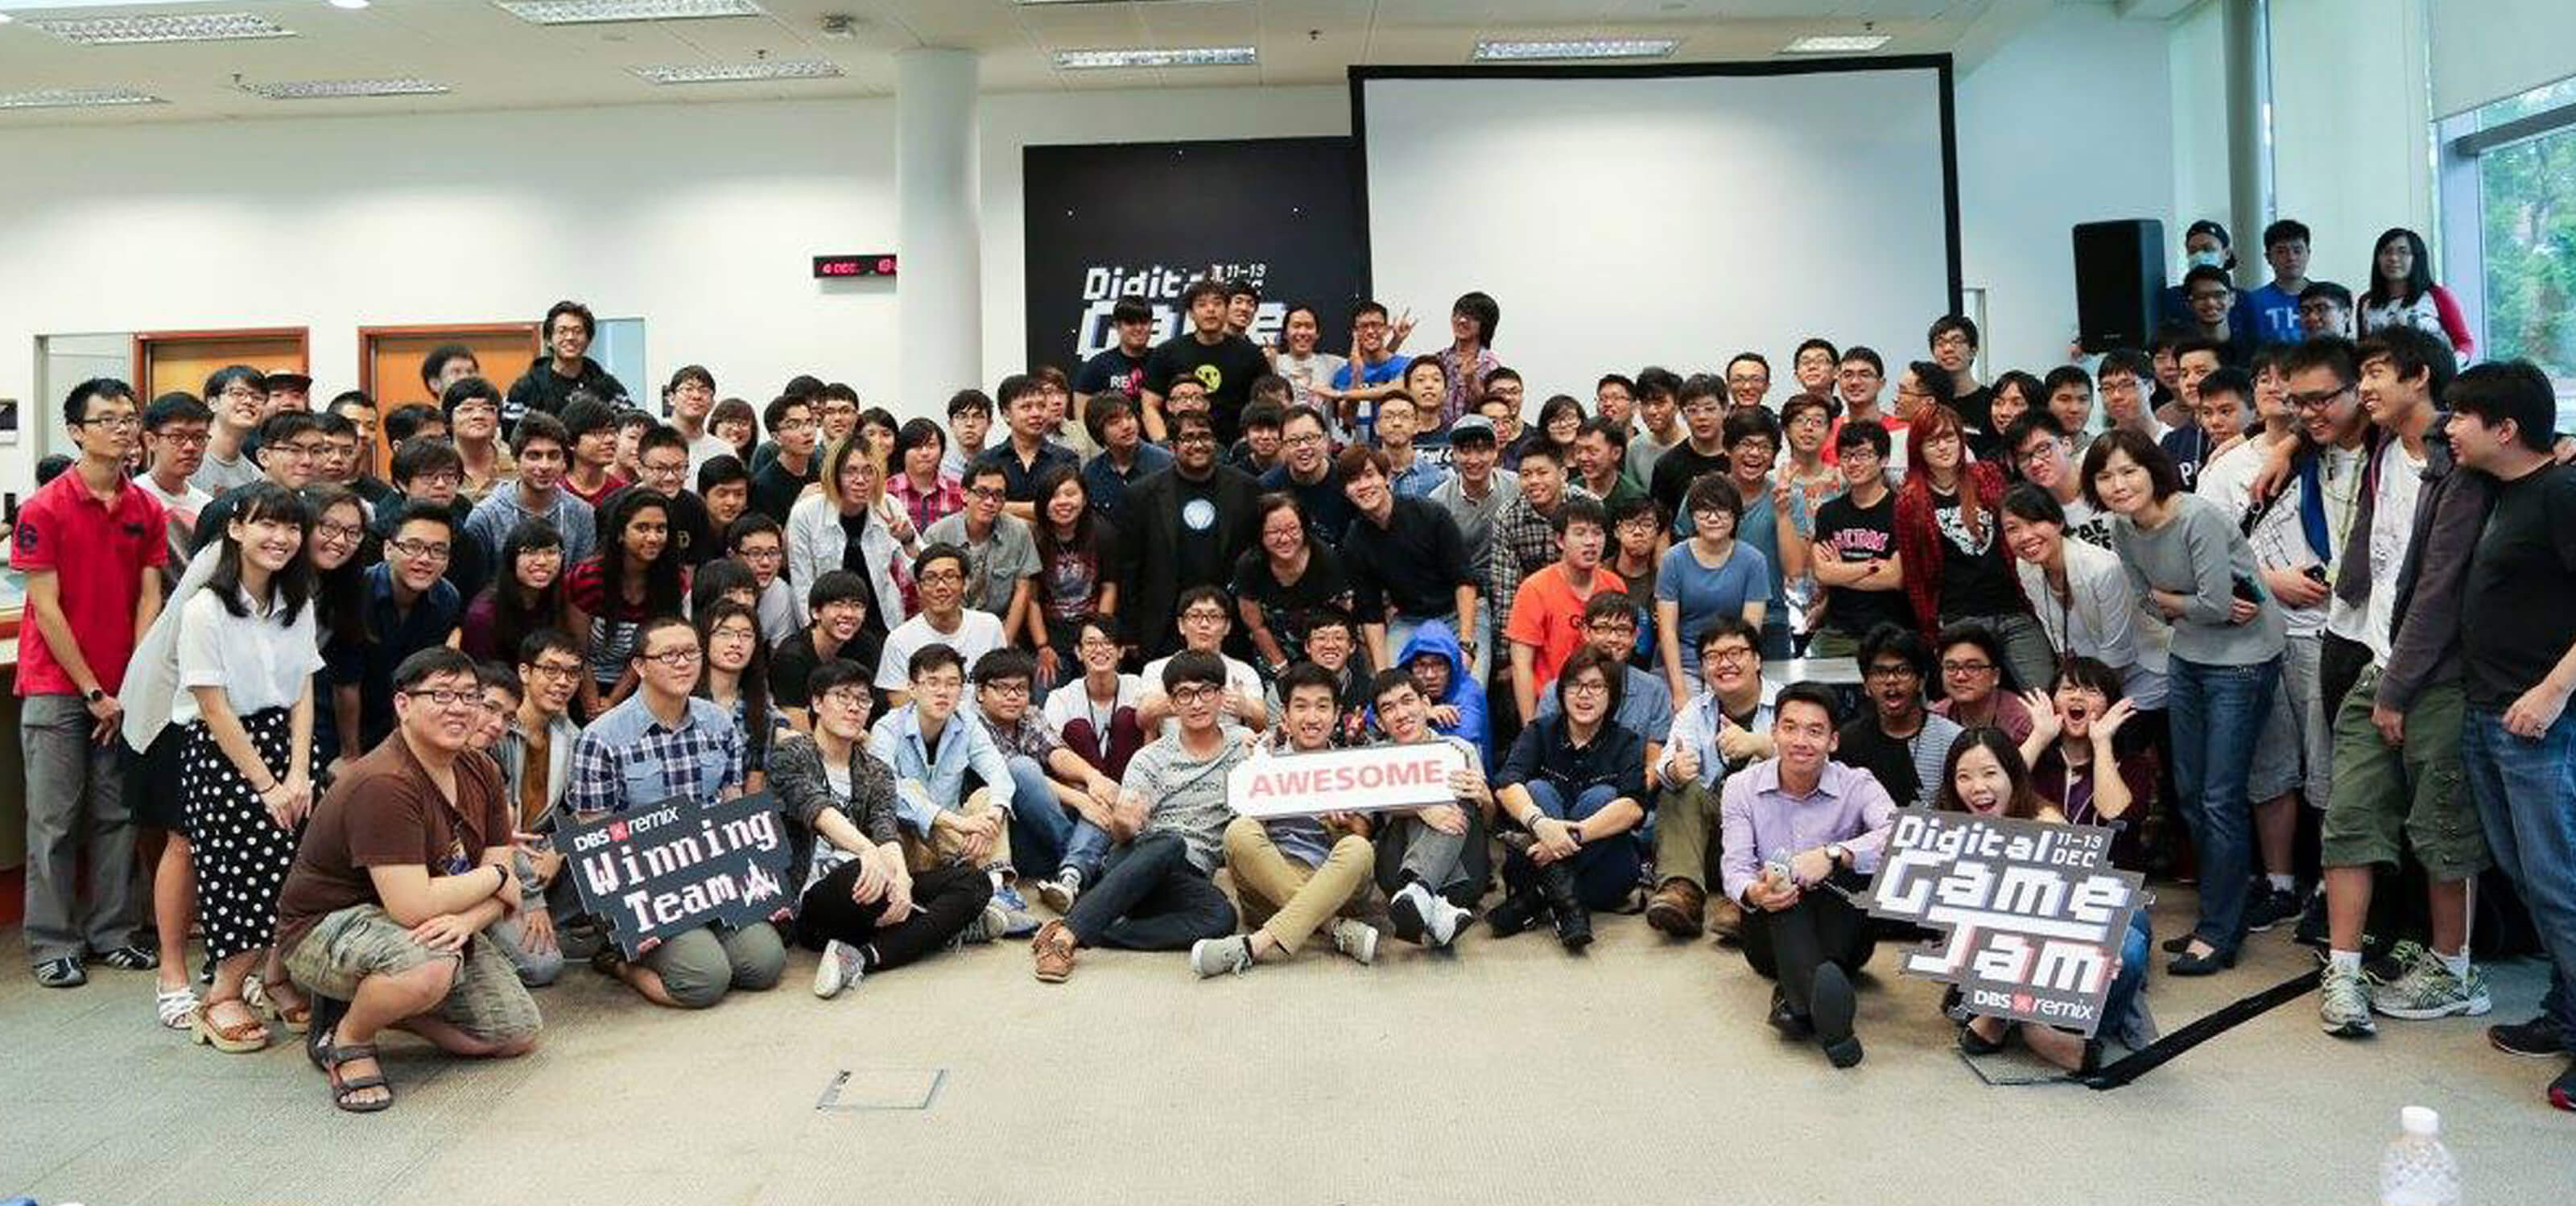 Dozens of students pose for a picture in an open, well-lit room; some hold Game Jam-related signs